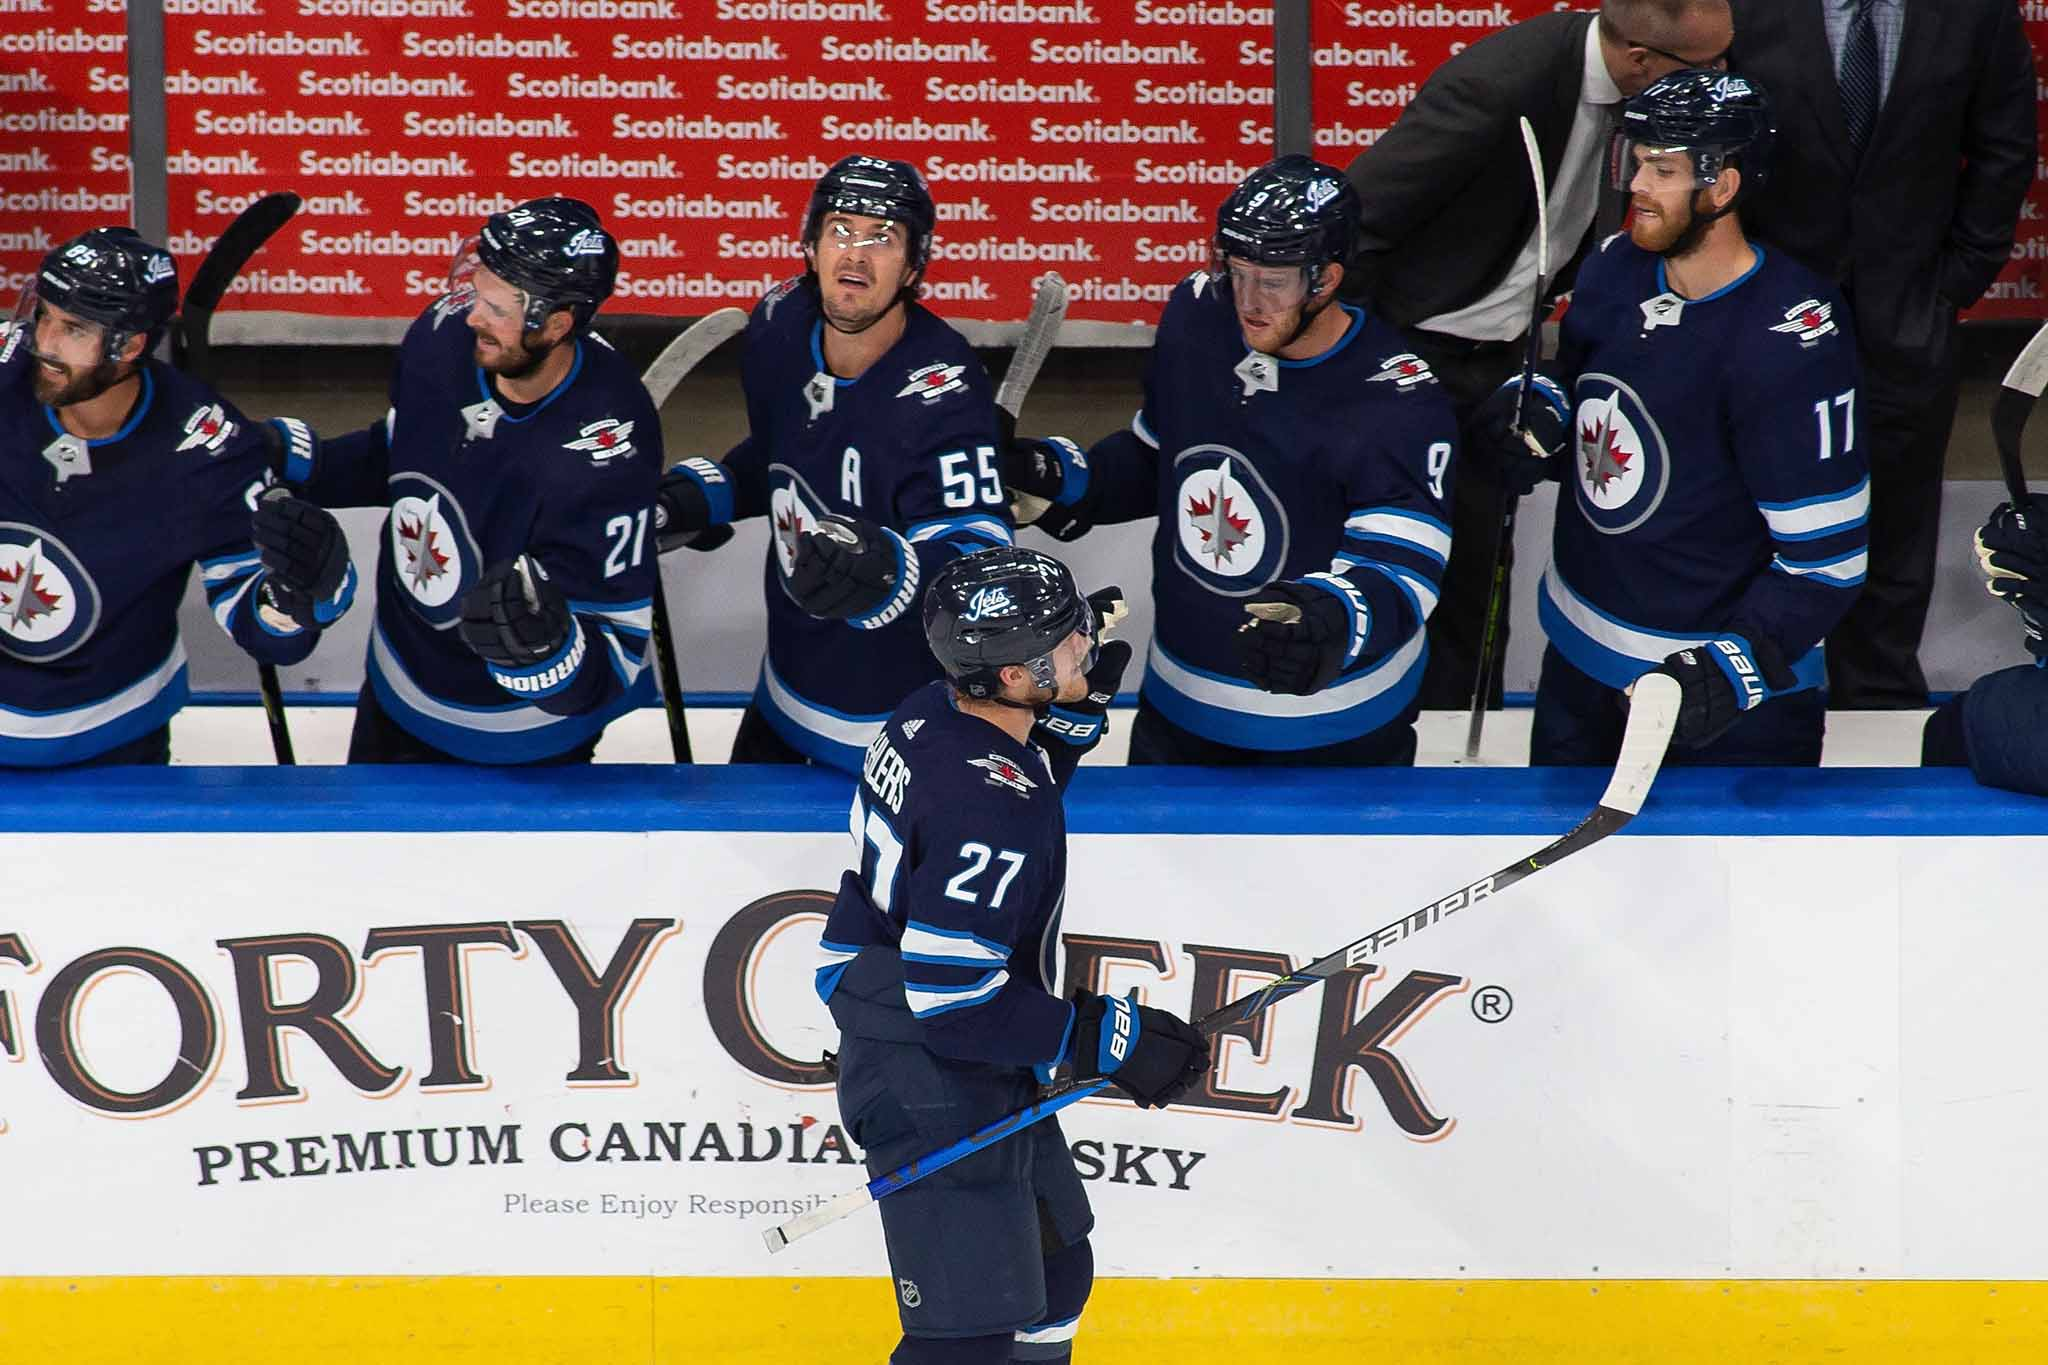 Ehlers has produced 135 goals and 302 points in 413 games over six seasons, reaching the 20-goal mark this year for the fifth consecutive time.